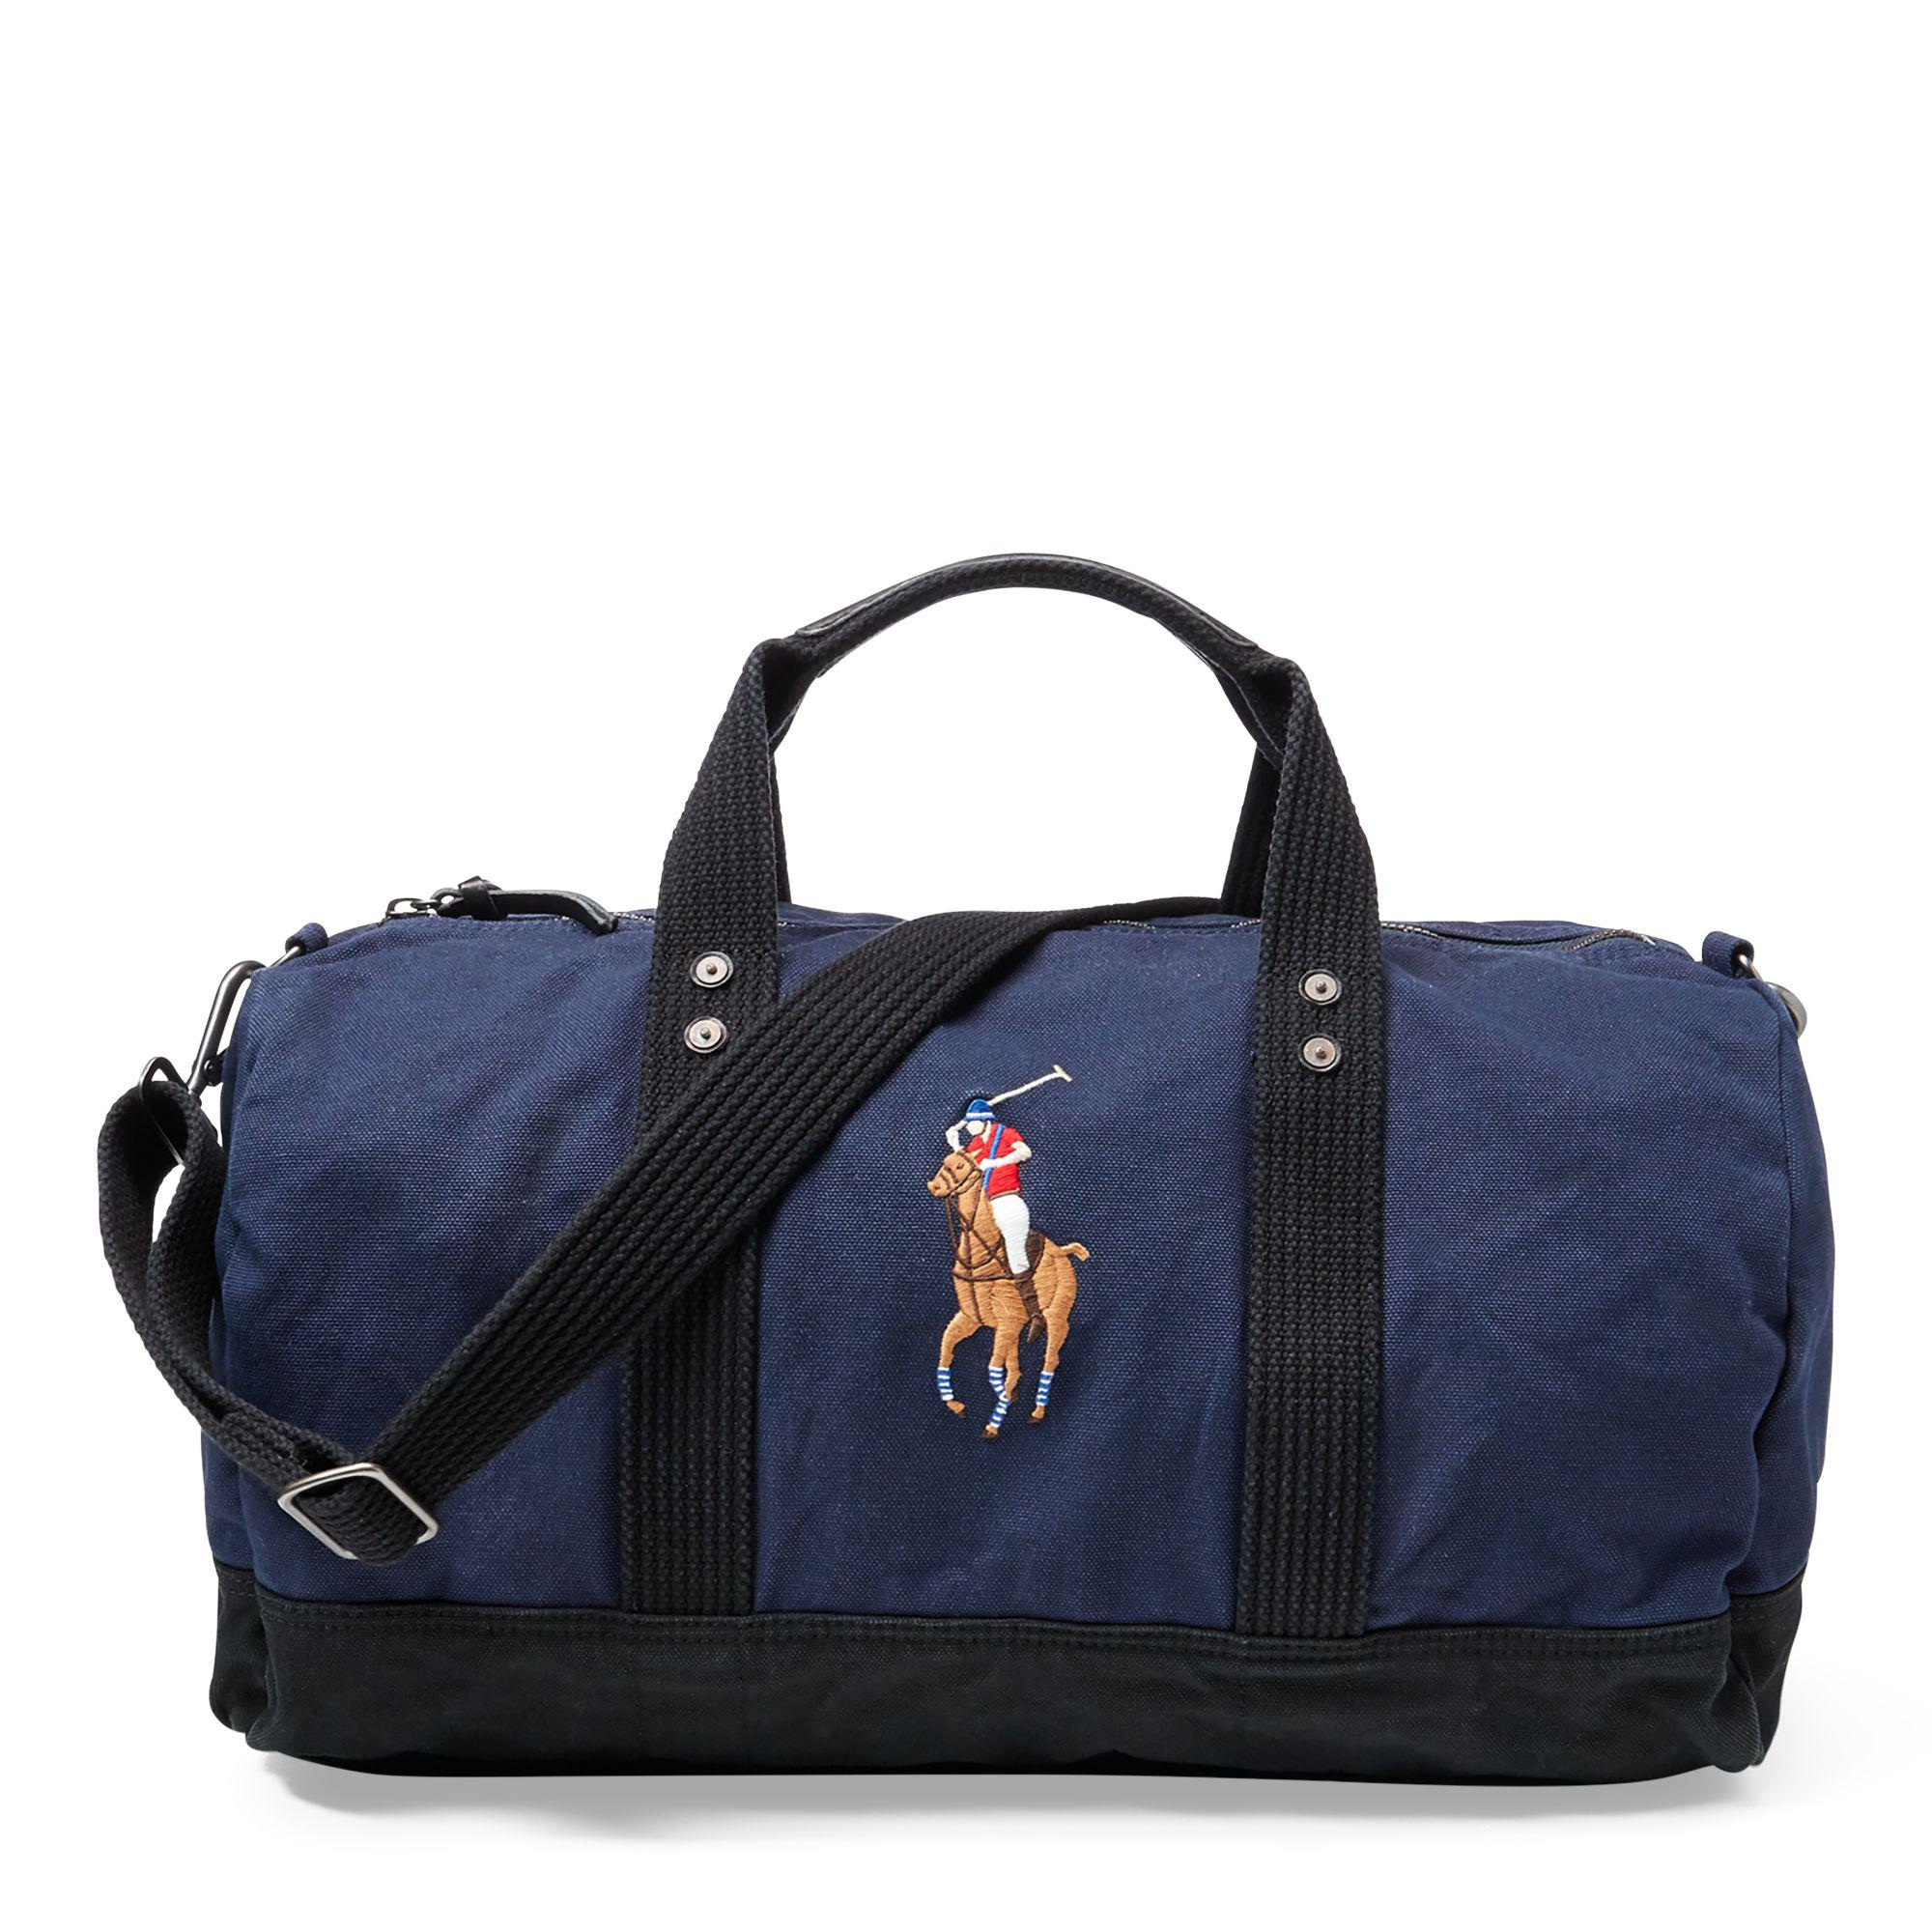 Polo Ralph Lauren Canvas Big Pony Duffel Bag in Blue for Men - Lyst 05aedc3a3304e